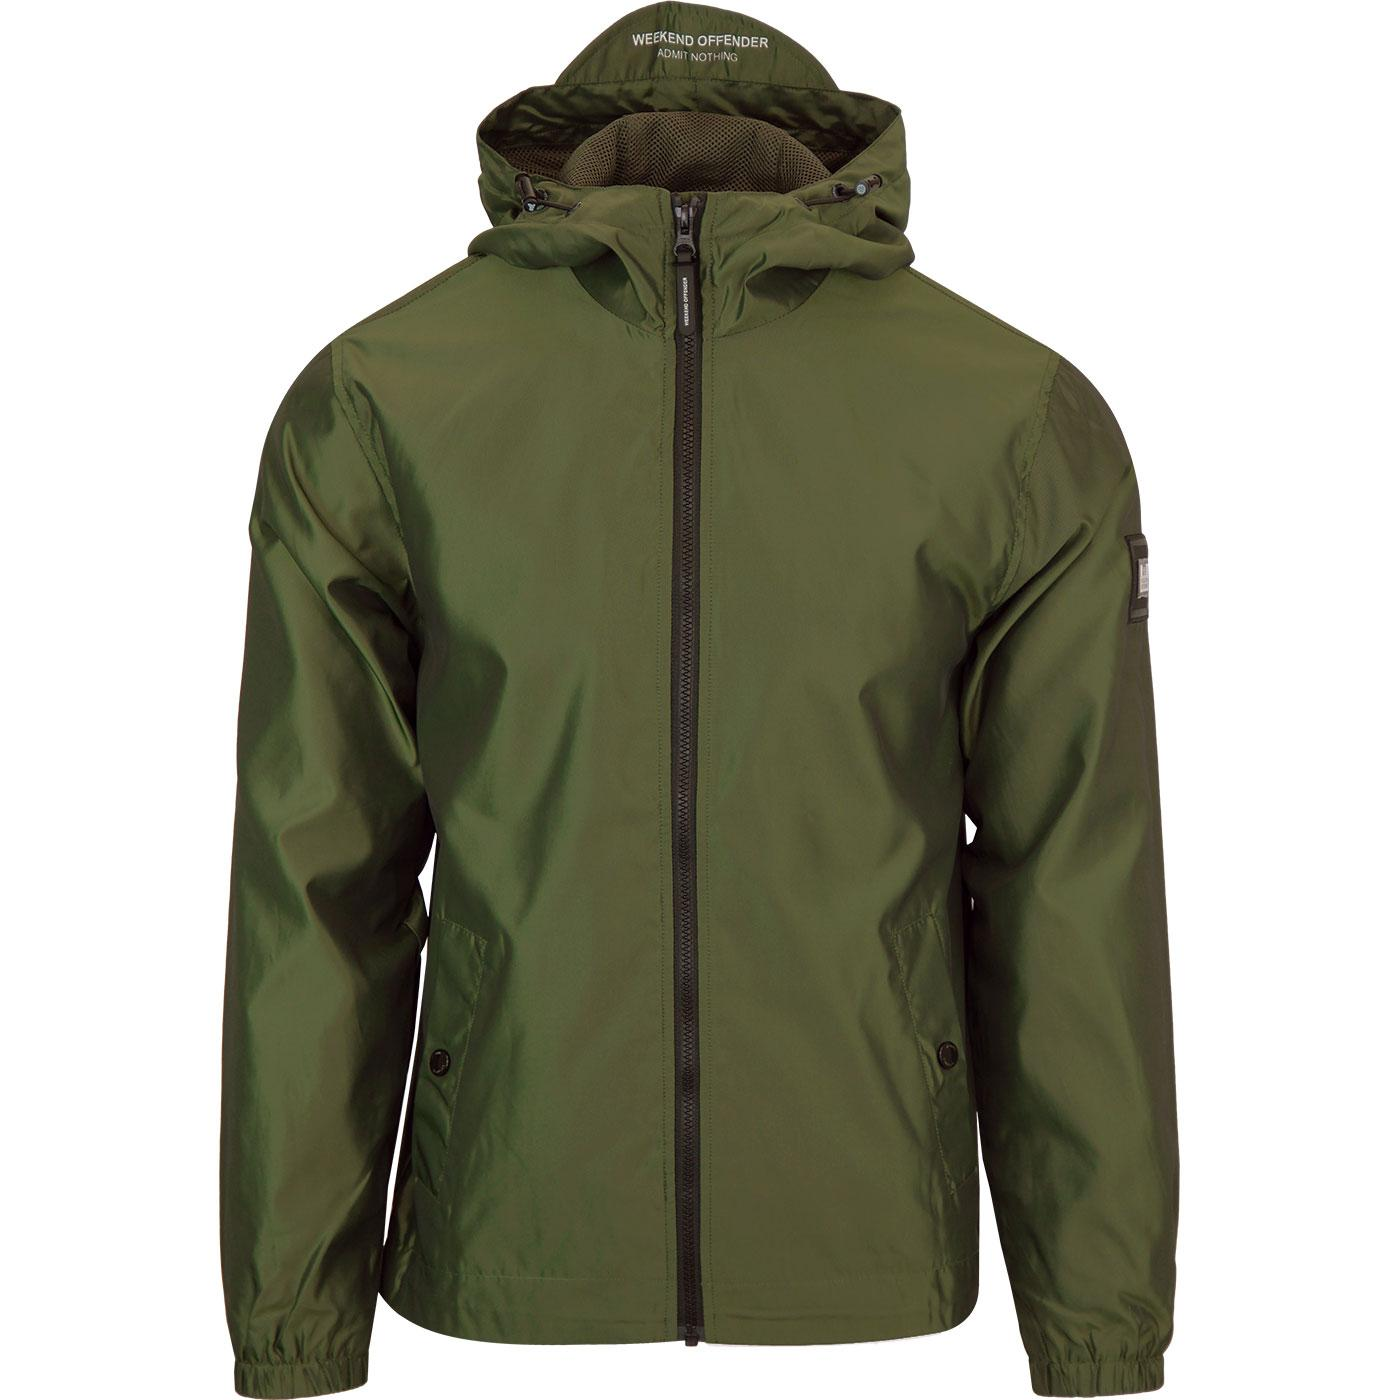 Armstrong WEEKEND OFFENDER 90s Hooded Jacket MOSS